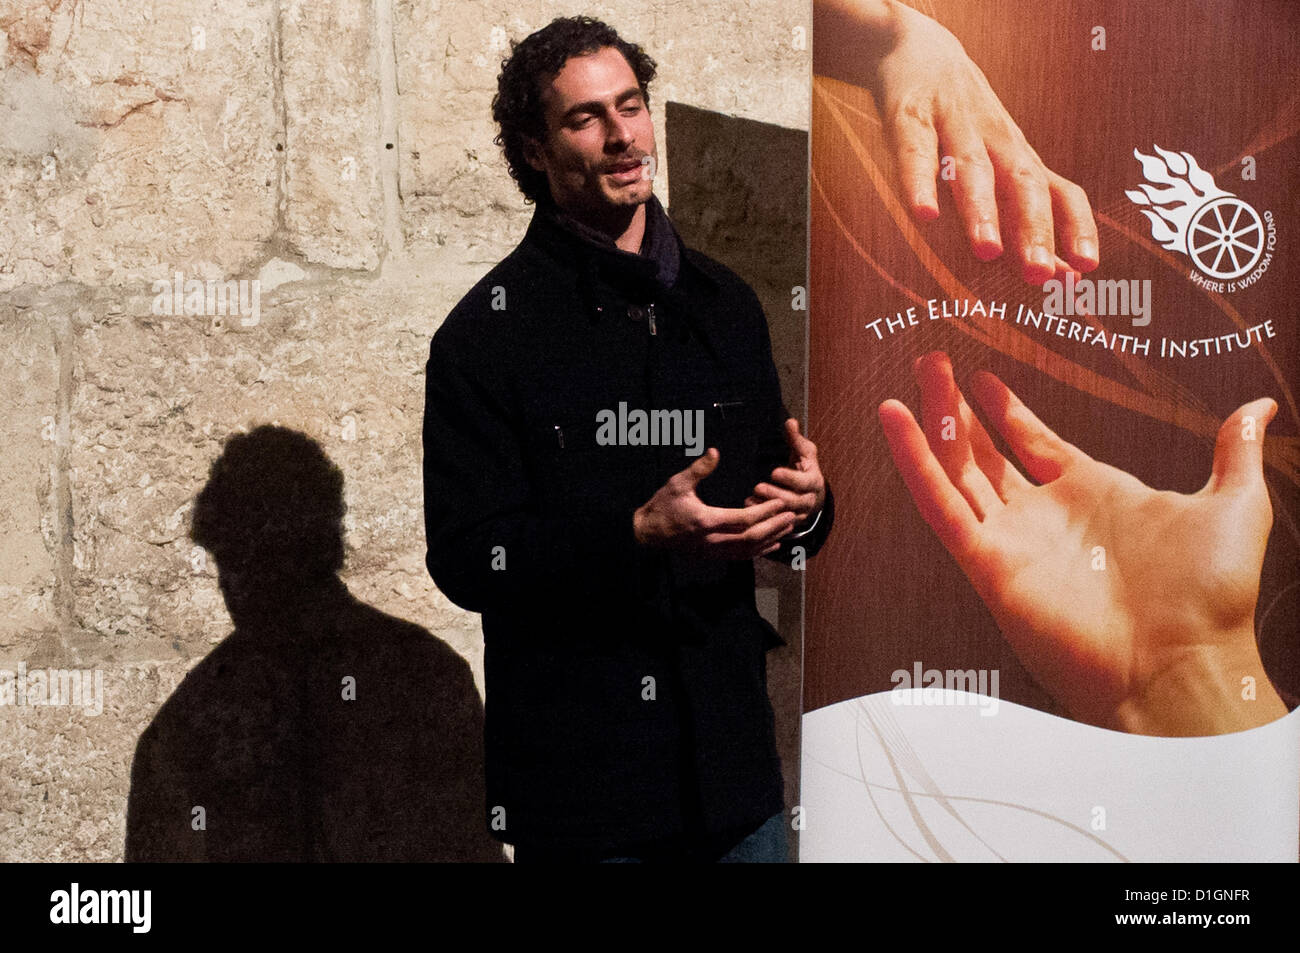 Jerusalem, Israel. 21st December 2012. Director of UNIFY addresses participants at an interfaith prayer of unity - Stock Image